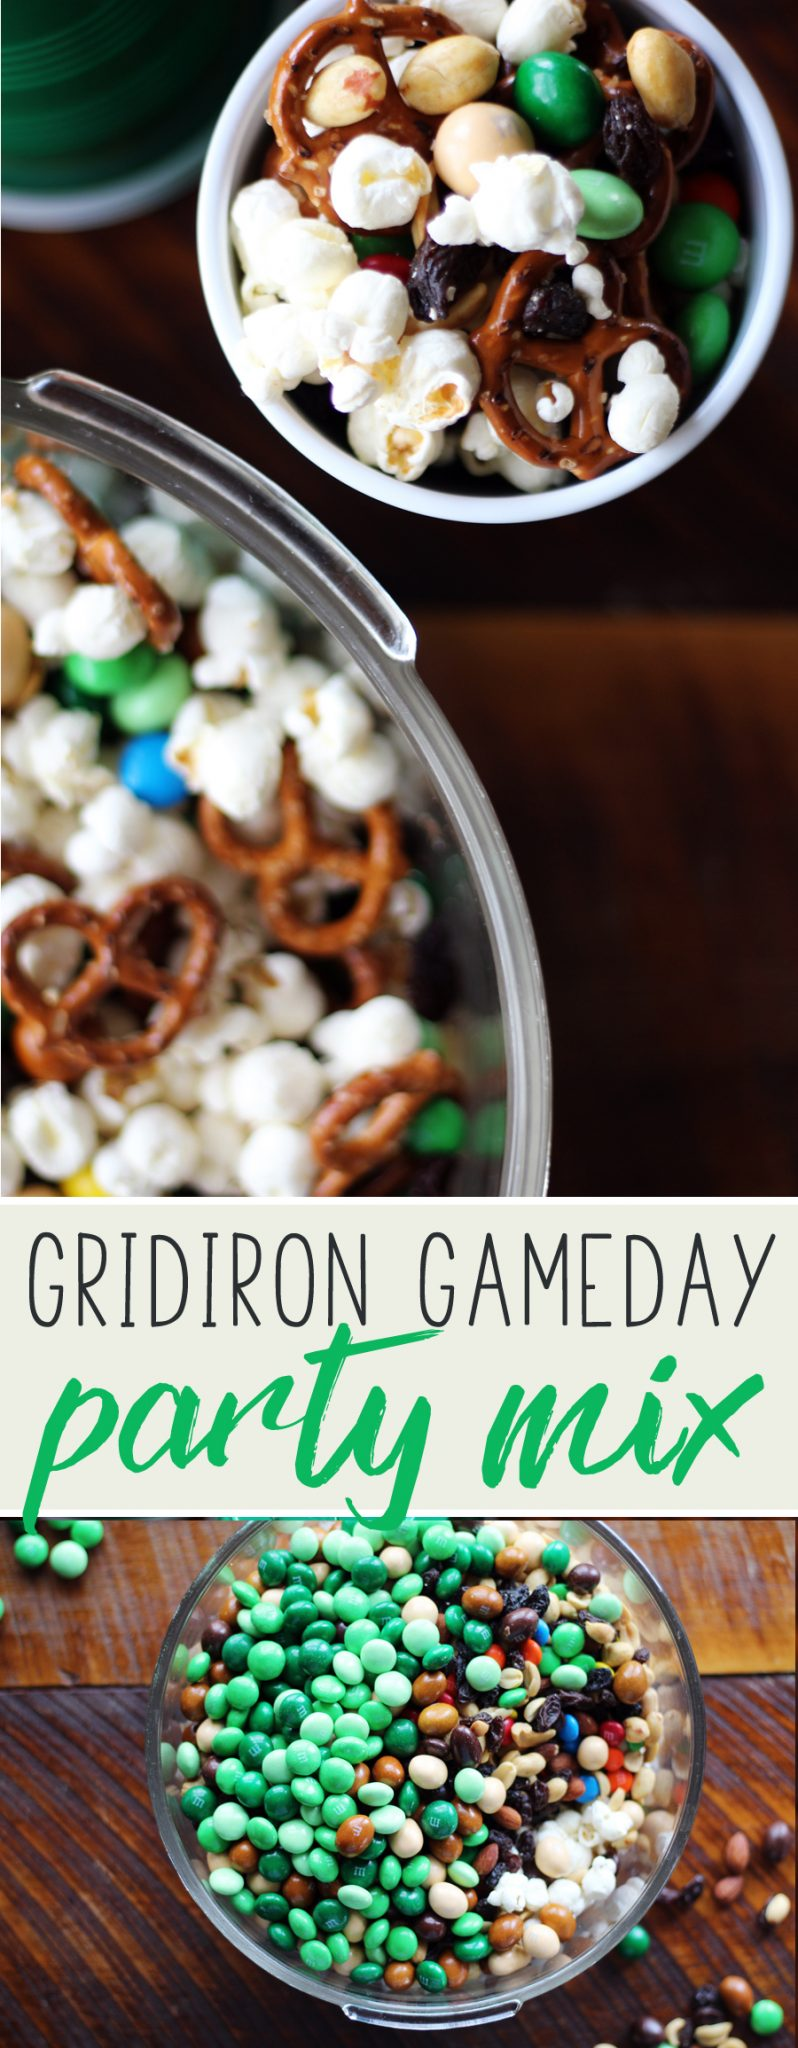 Gridiron Gameday Party Mix